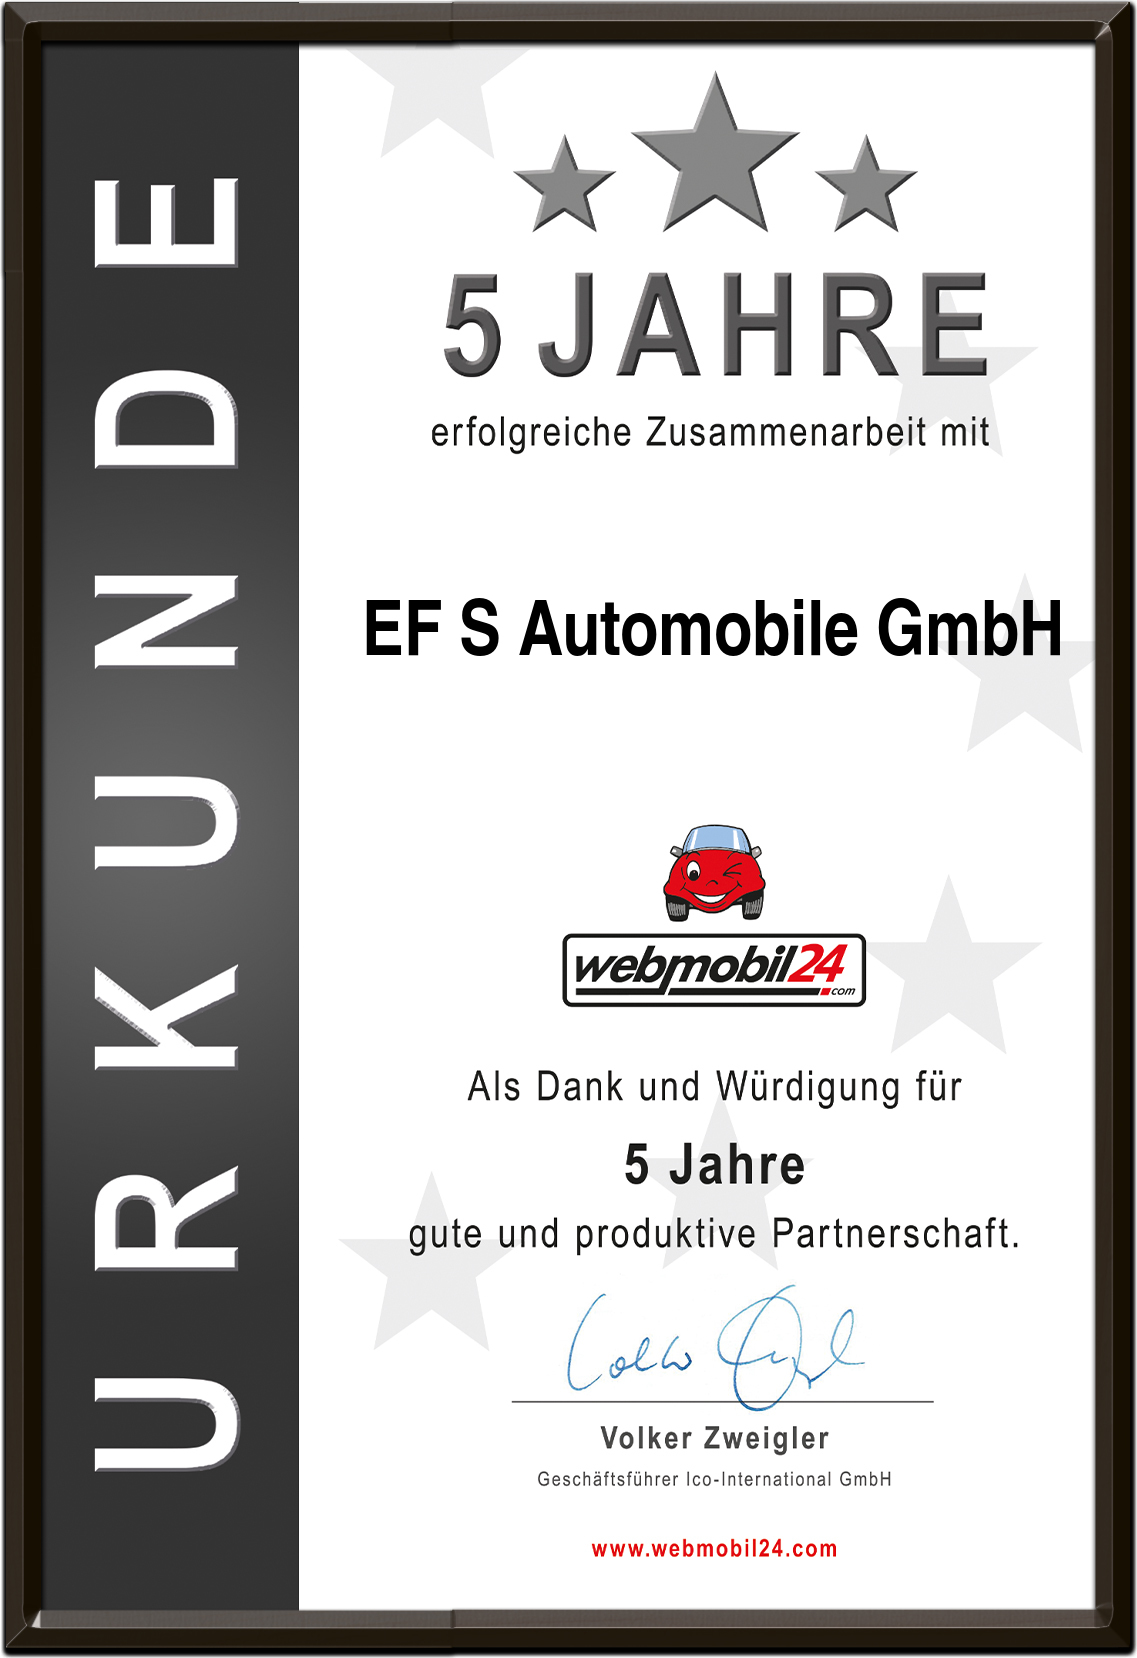 EF S Automobile GmbH